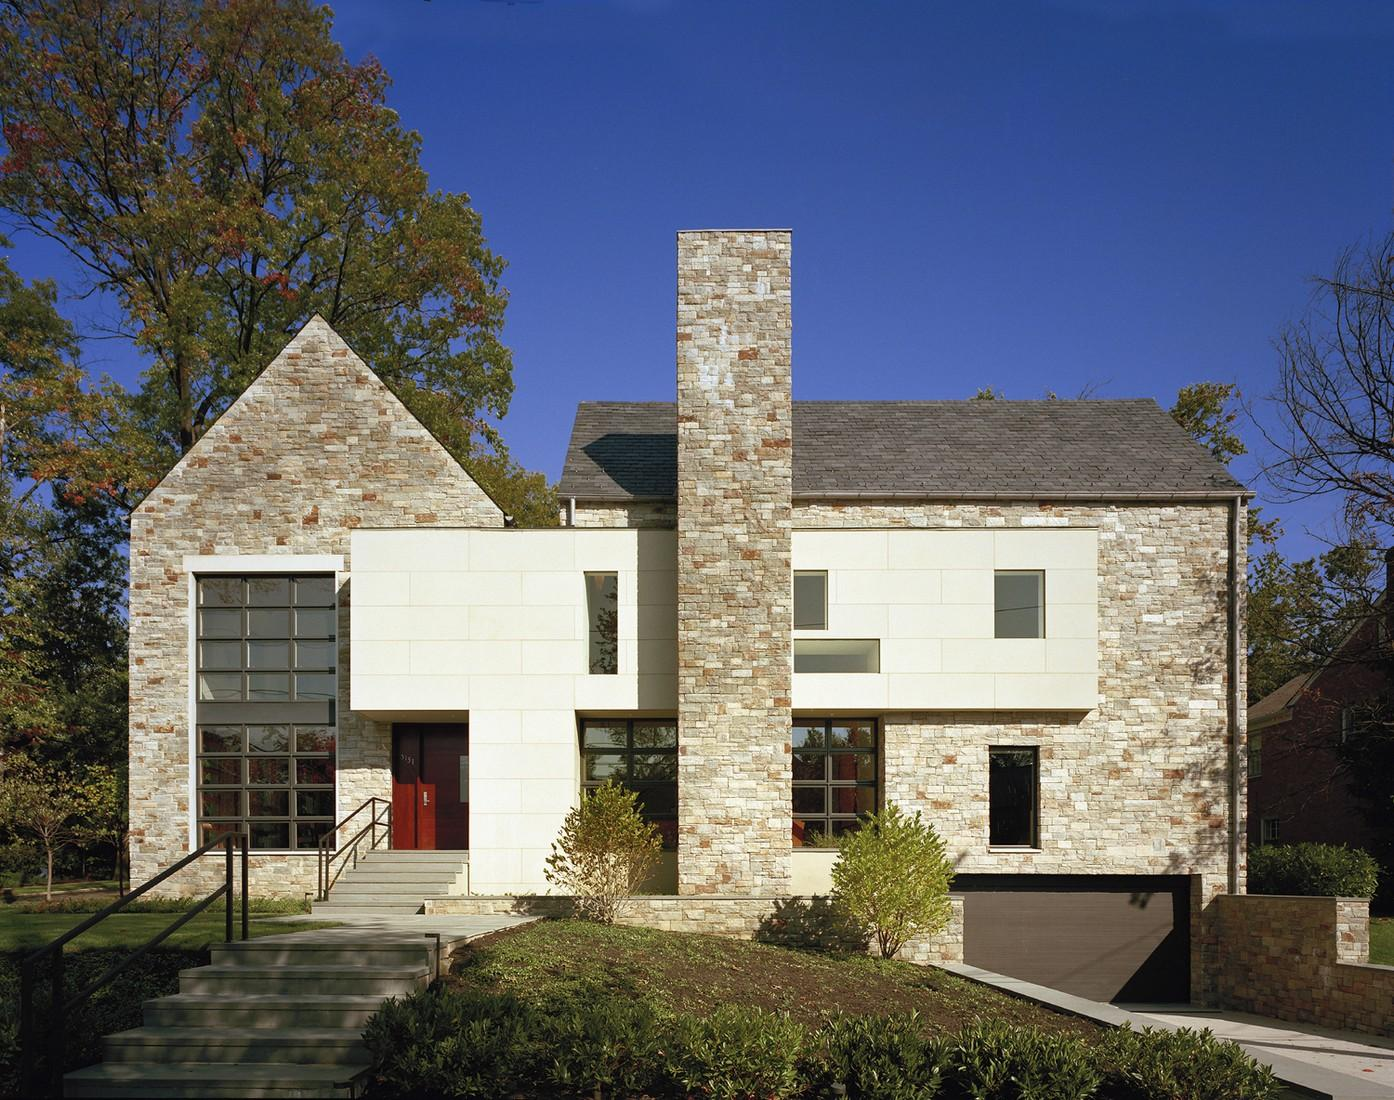 The edgemoor residence by david jameson architect - The edgemoor residence by david jameson architect ...